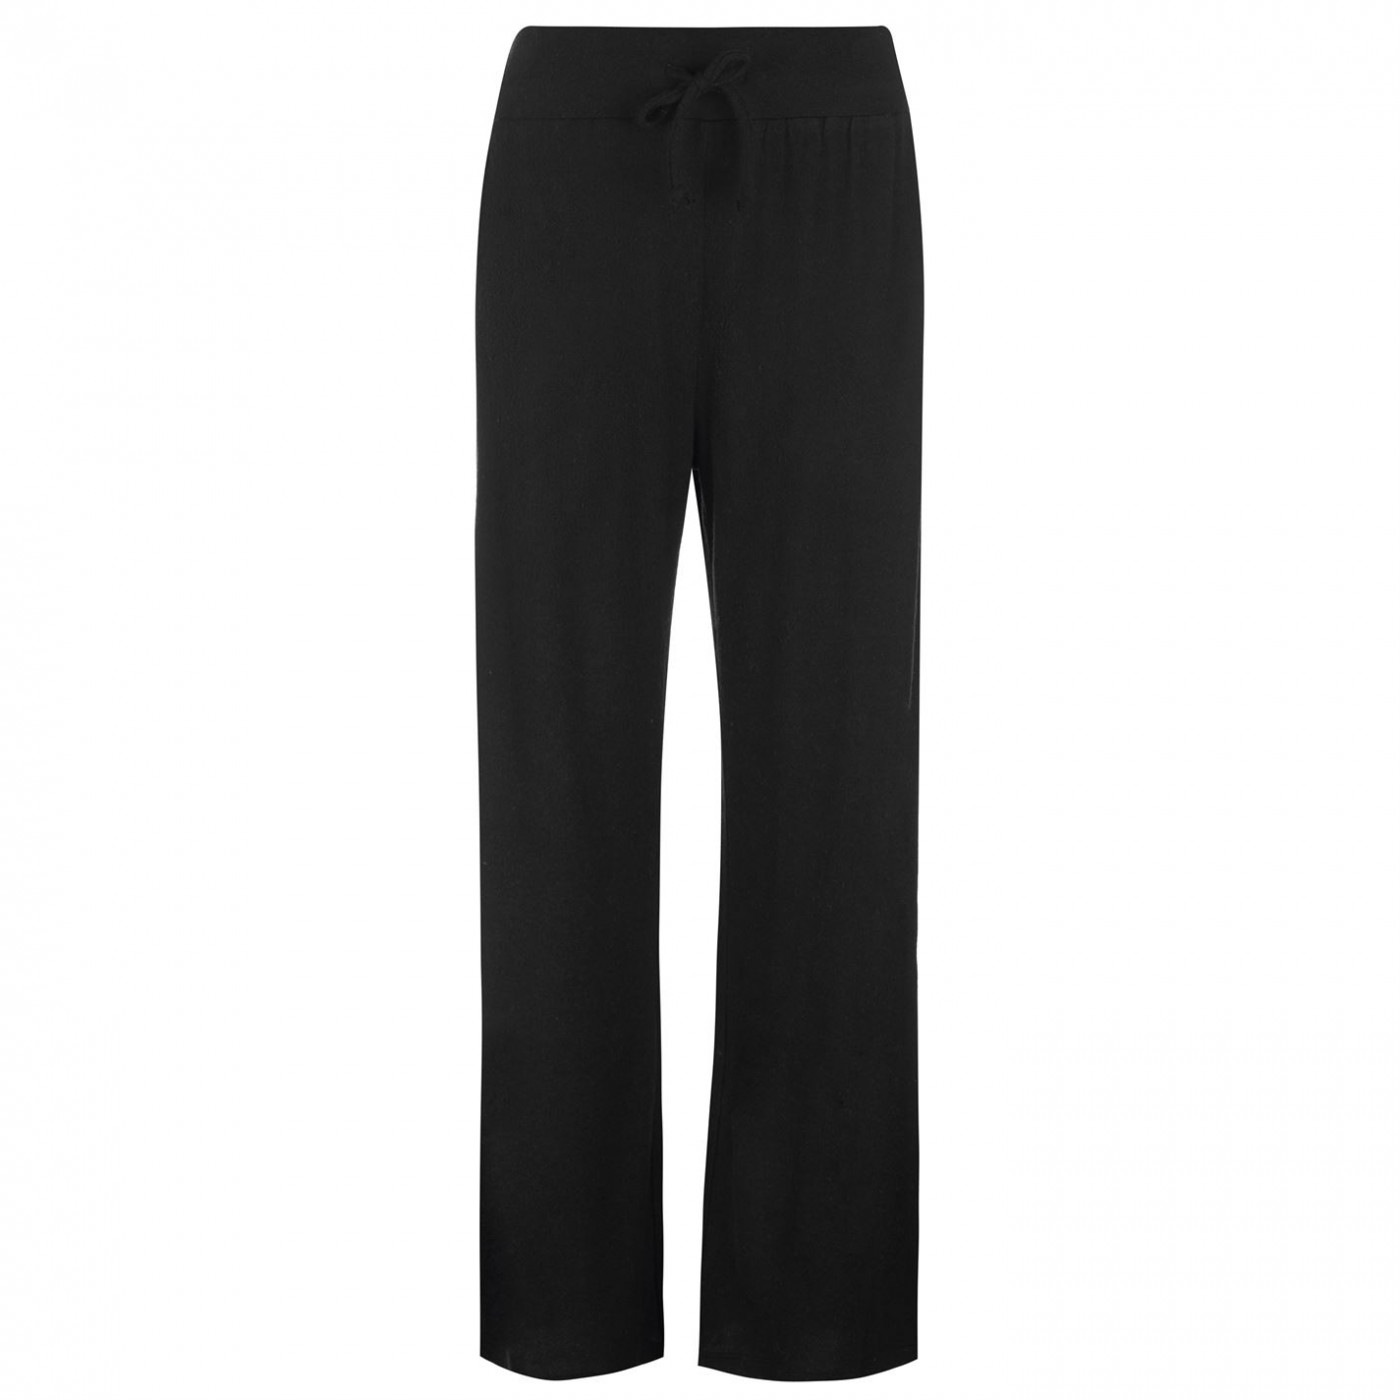 Golddigga Soft Fleece Relaxed Joggers Ladies